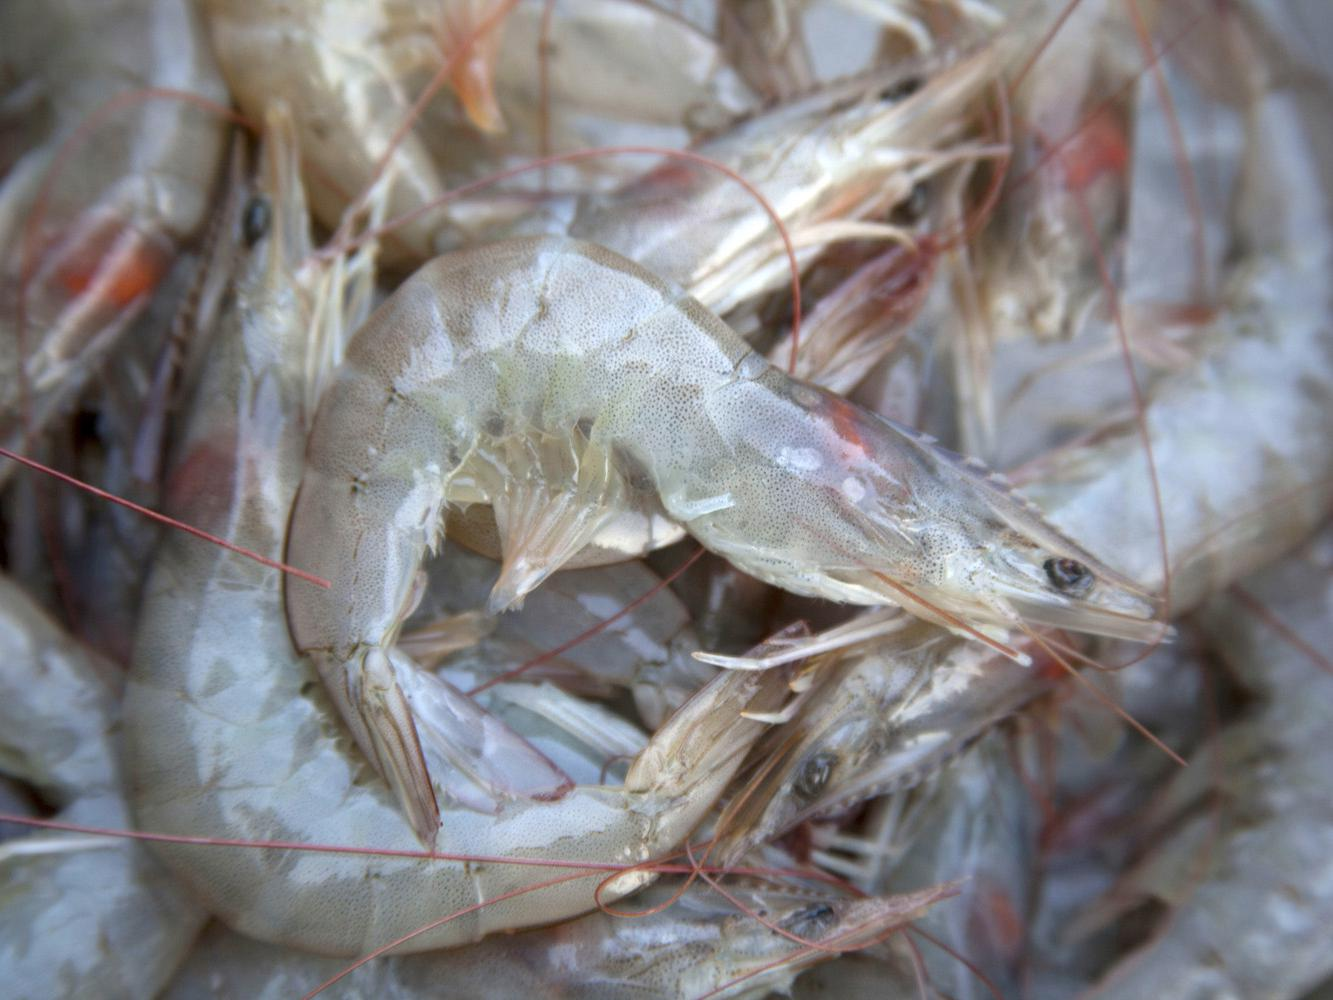 The bulk of the 1.137 million pounds of shrimp landed in Biloxi during the first two weeks of the season have been medium, 36- to 40-count shrimp. (Photo by MSU Ag Communications/Kat Lawrence)